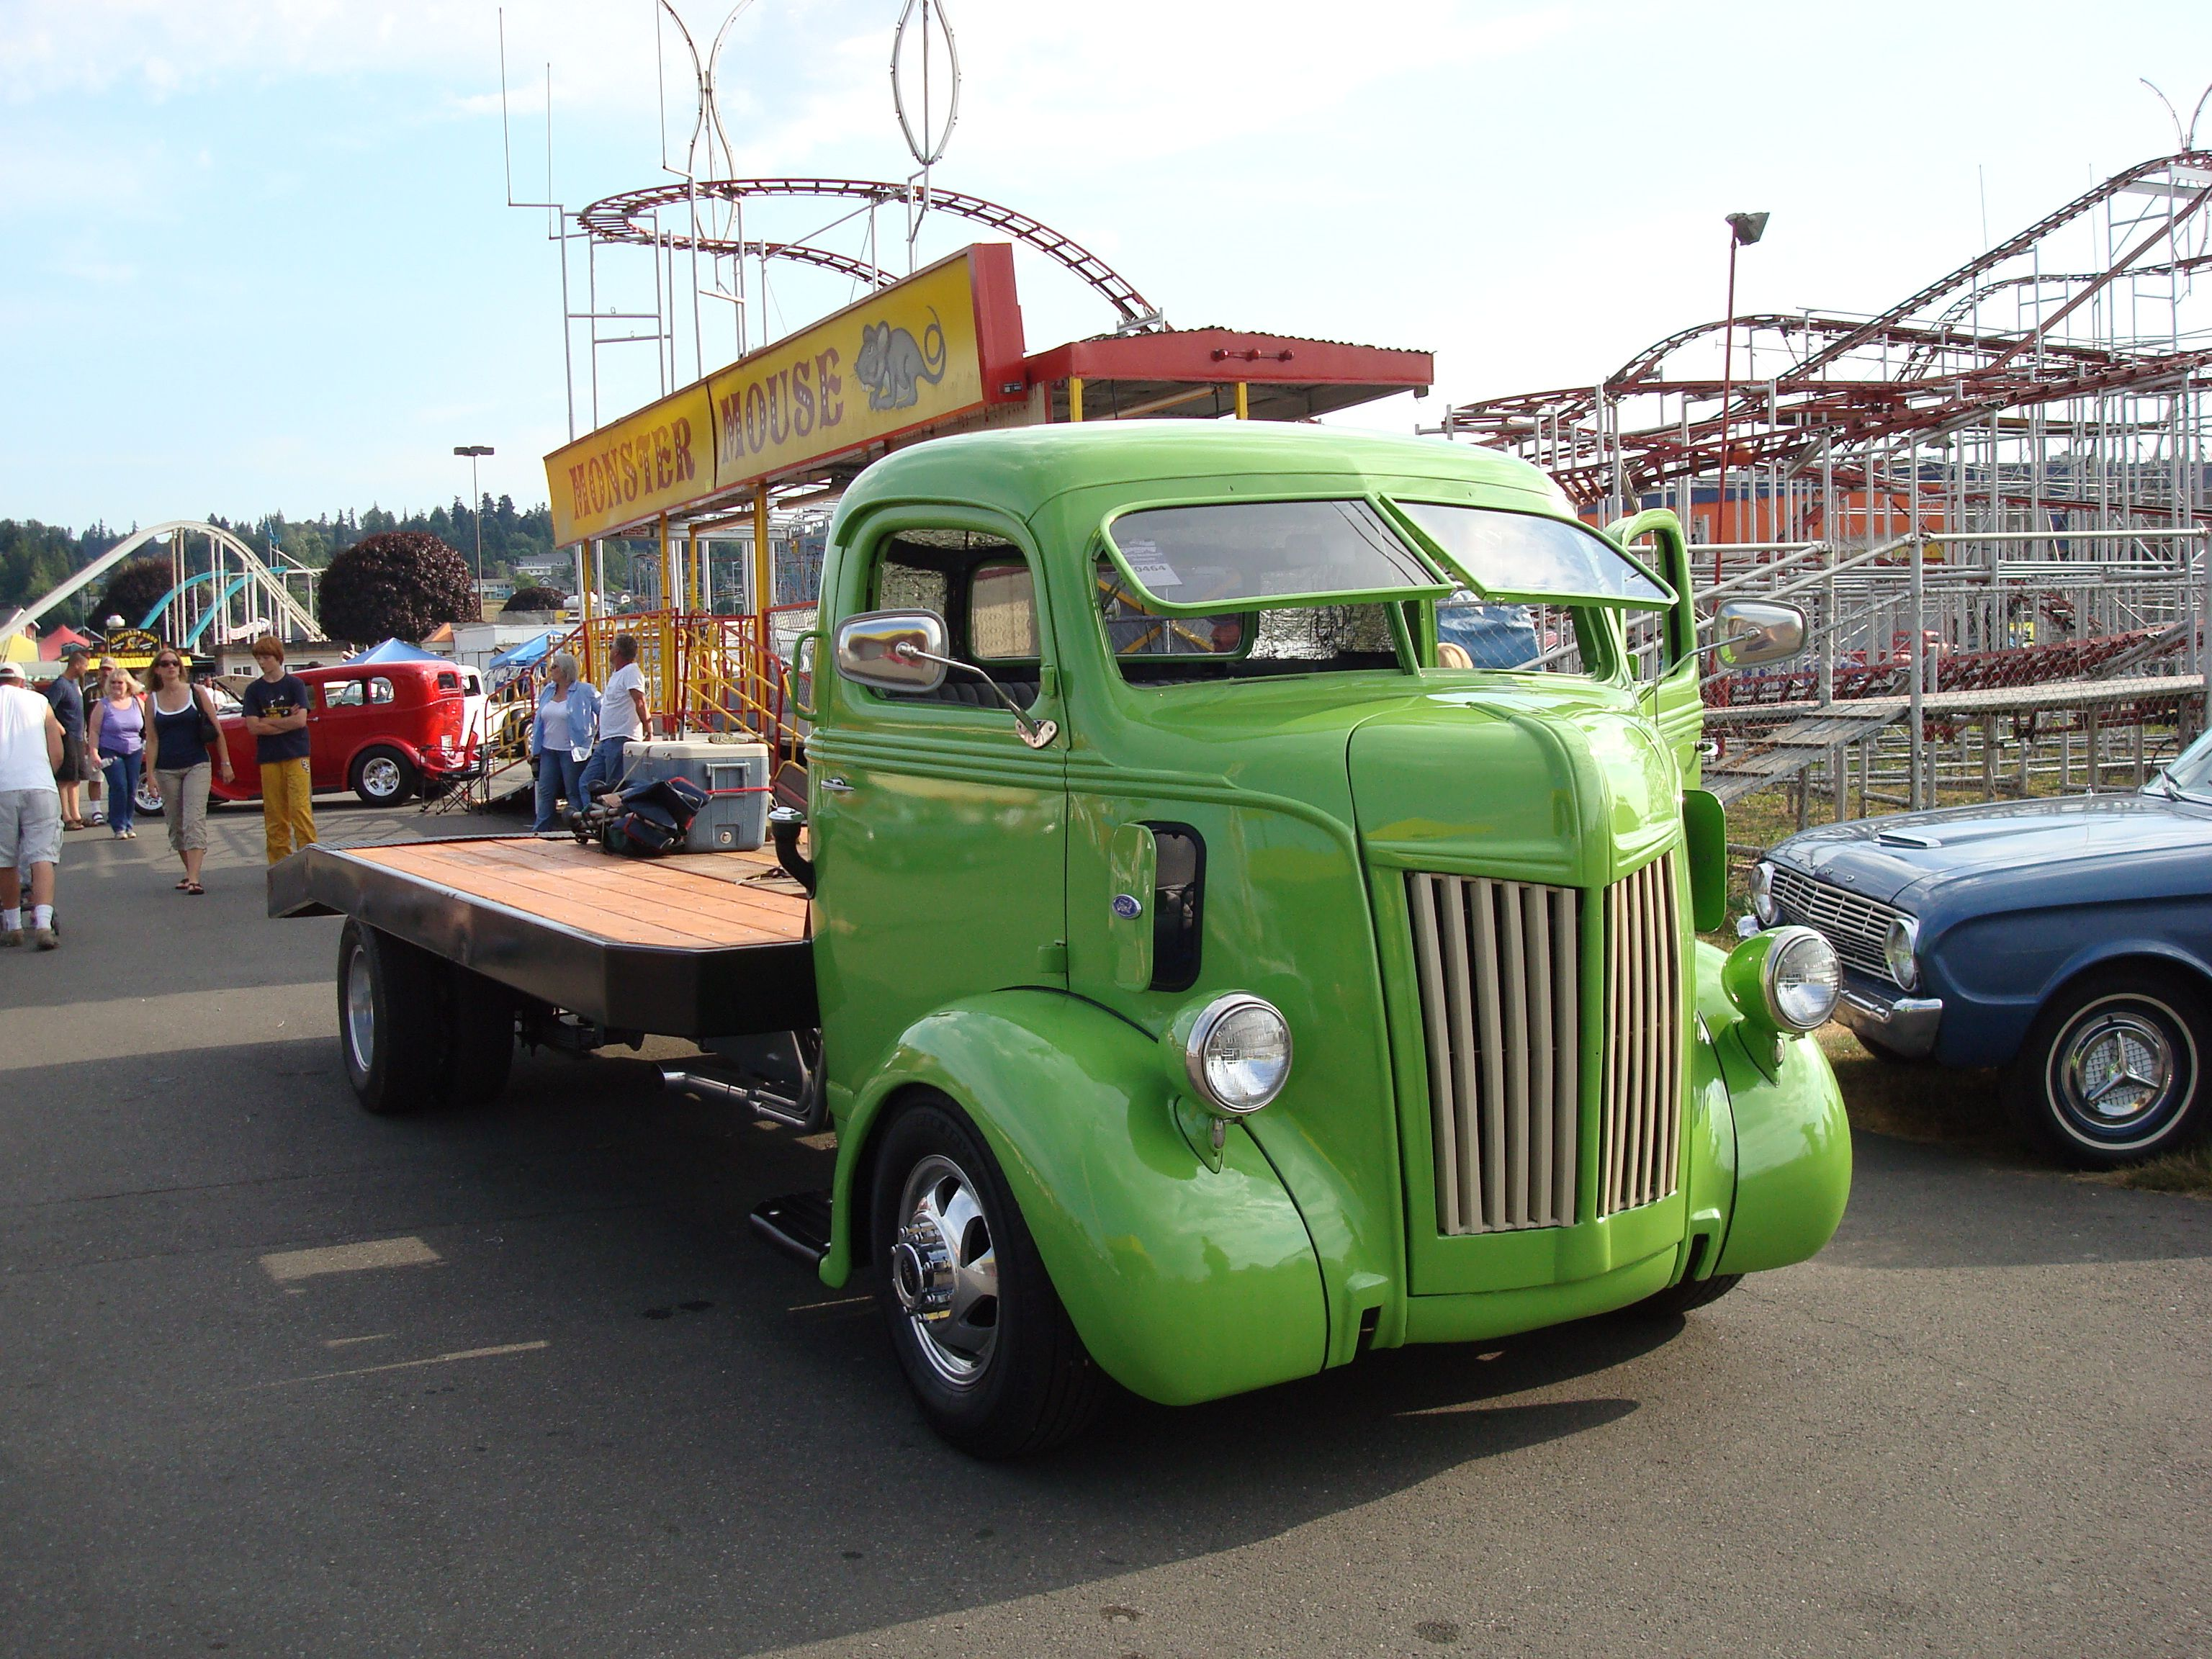 Craigslist Houston Tx Gmc Parts For Pinterest: 1939 Ford COE Cab-Over Truck - Ford Truck.